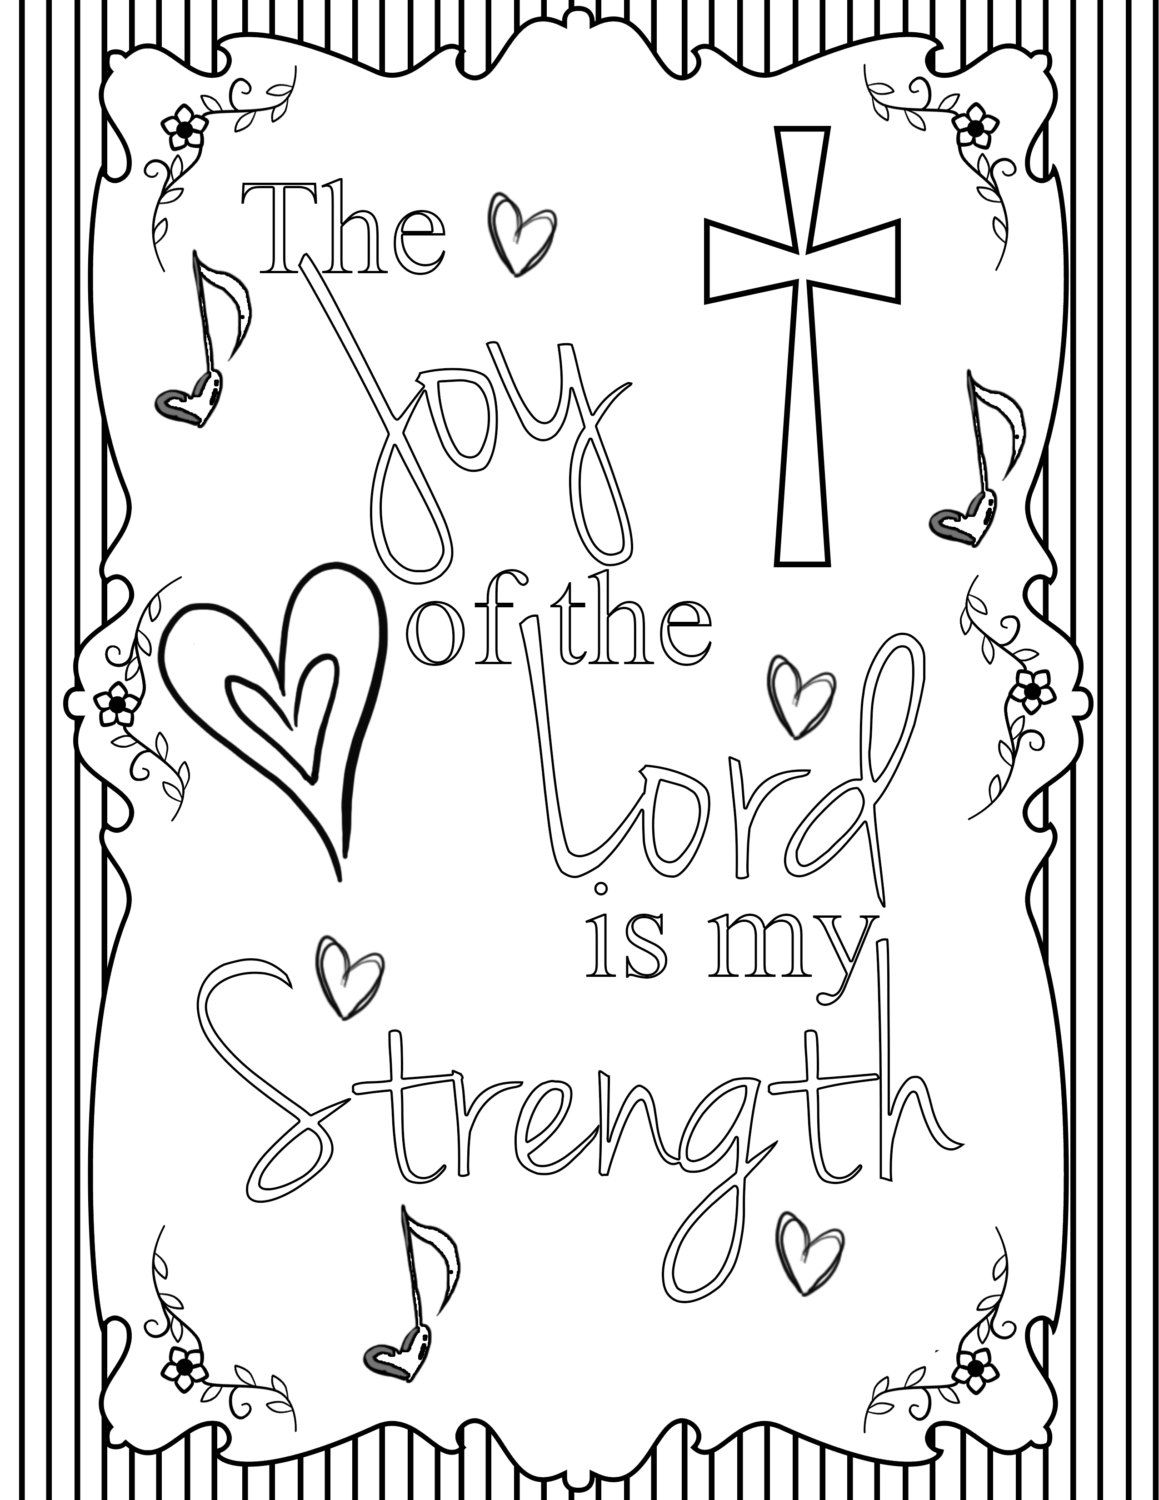 Joy Of The Lord Adult Coloring Page By Fidbycourtney On Etsy